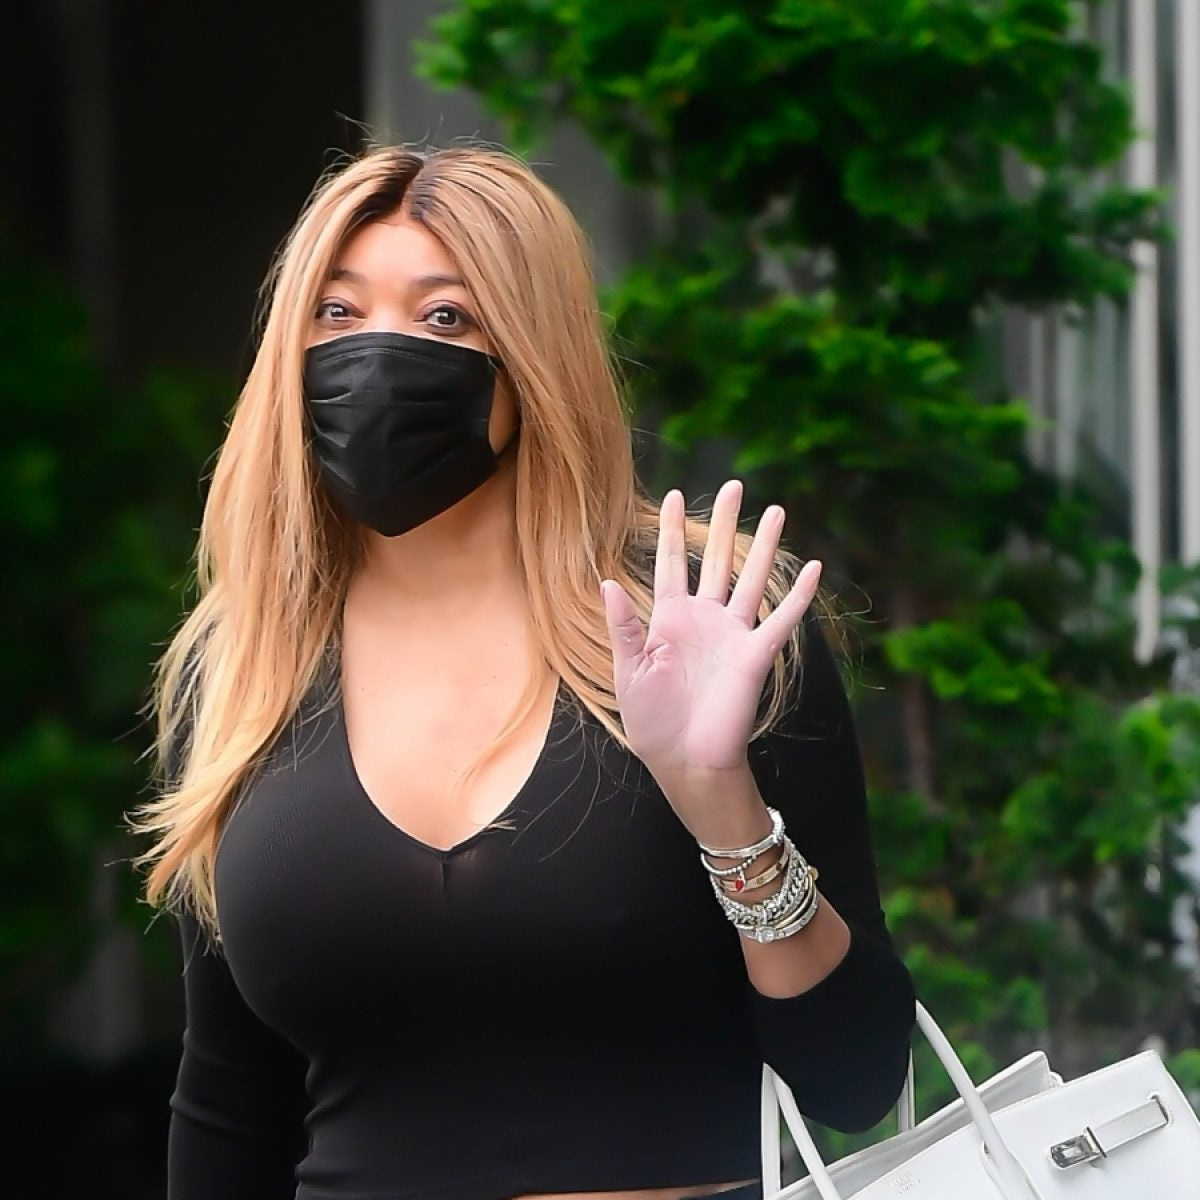 Wendy Williams Tests Positive for COVID-19 Amid Health Concerns, Show's Return Postponed